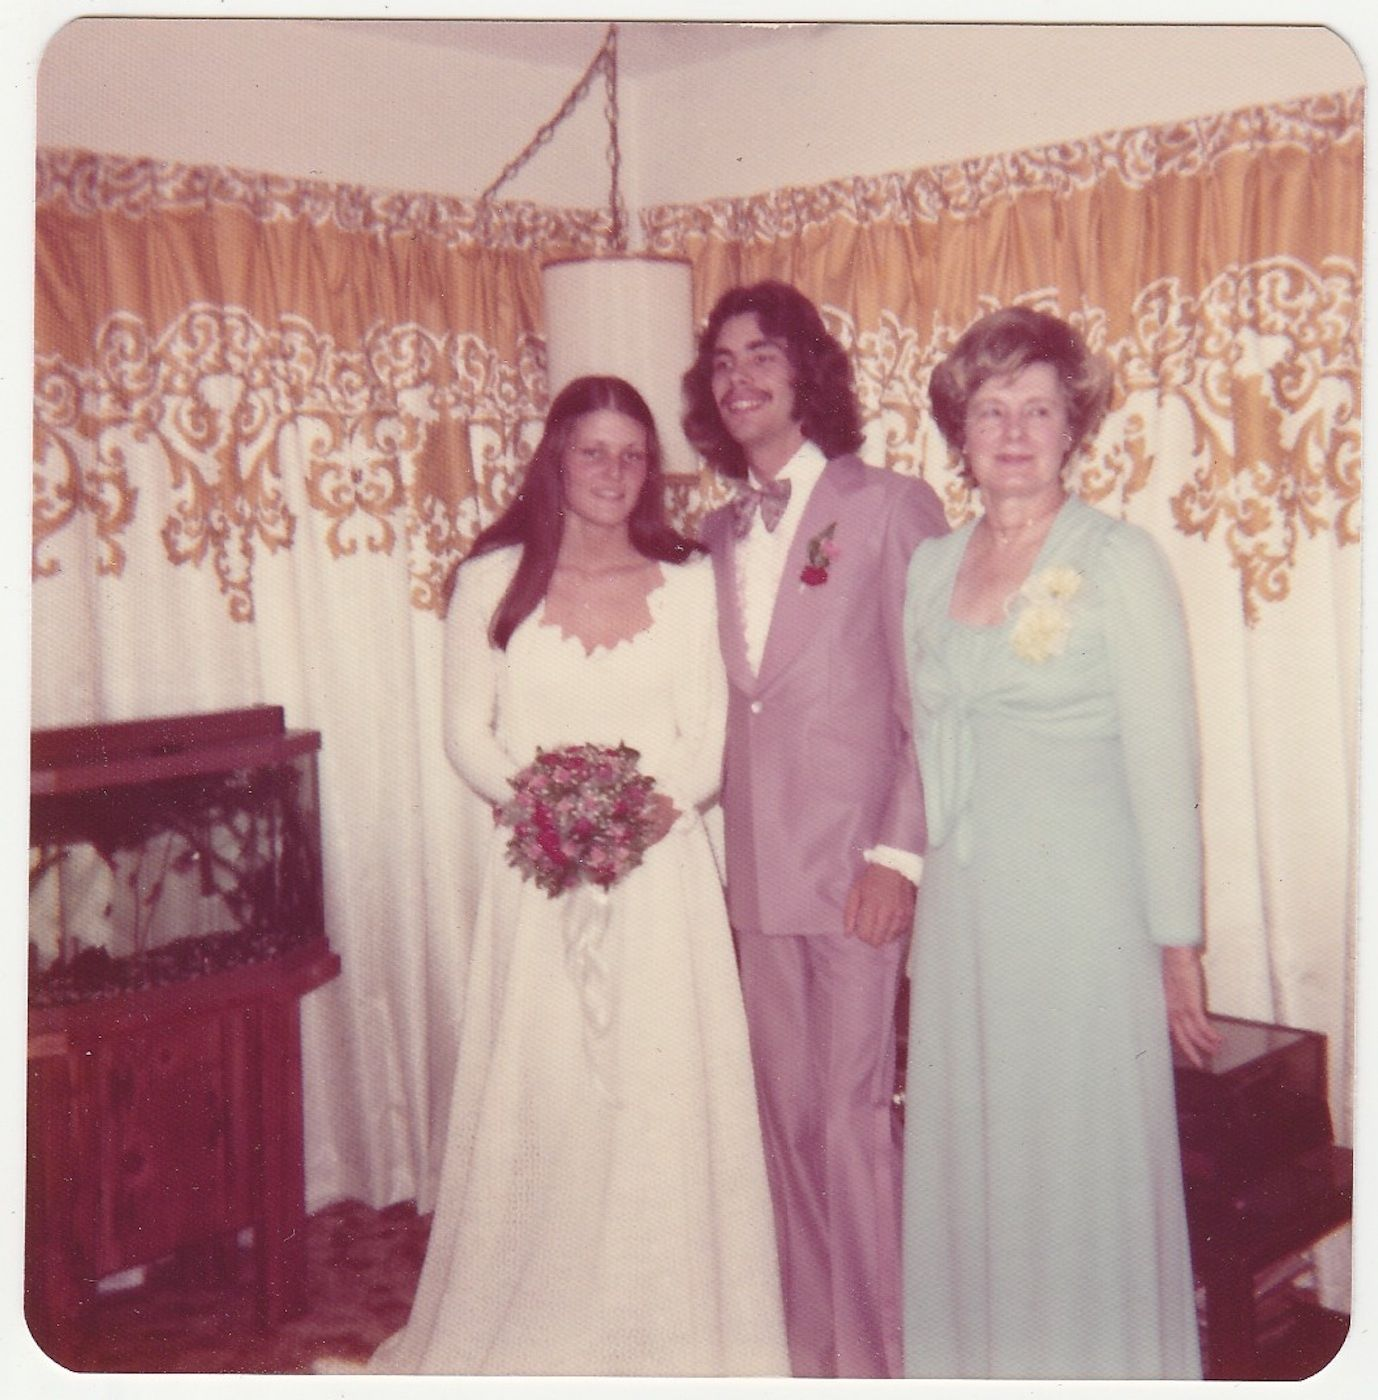 70 Interesting Vintage Polaroid Snaps of Weddings in the 1970s ...